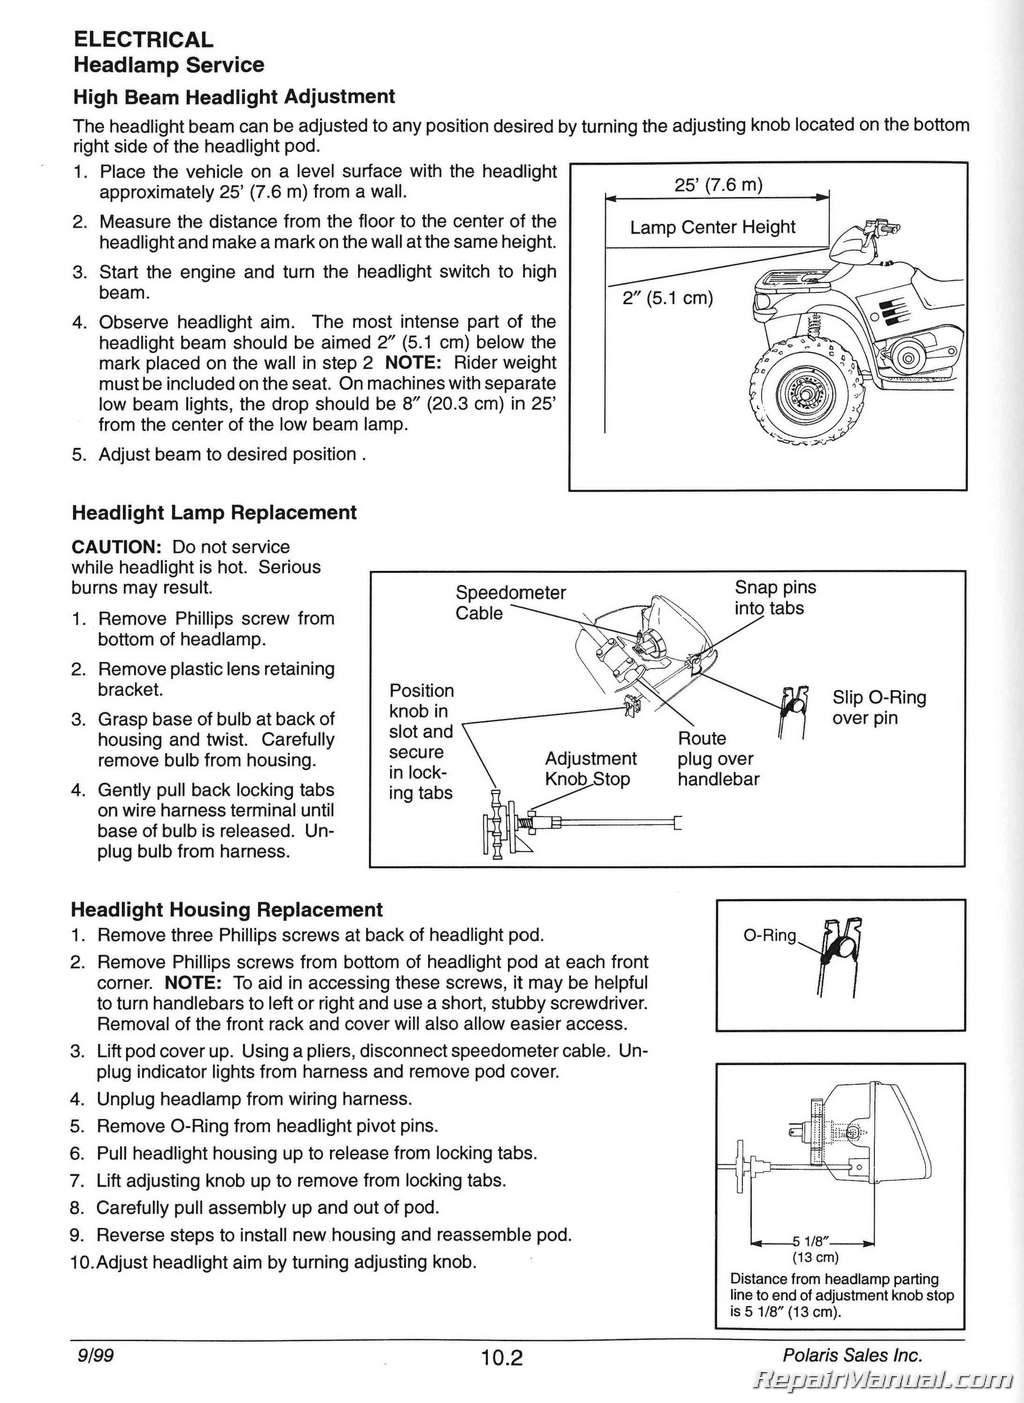 Haynes polaris repair manual 2508 | dennis kirk.